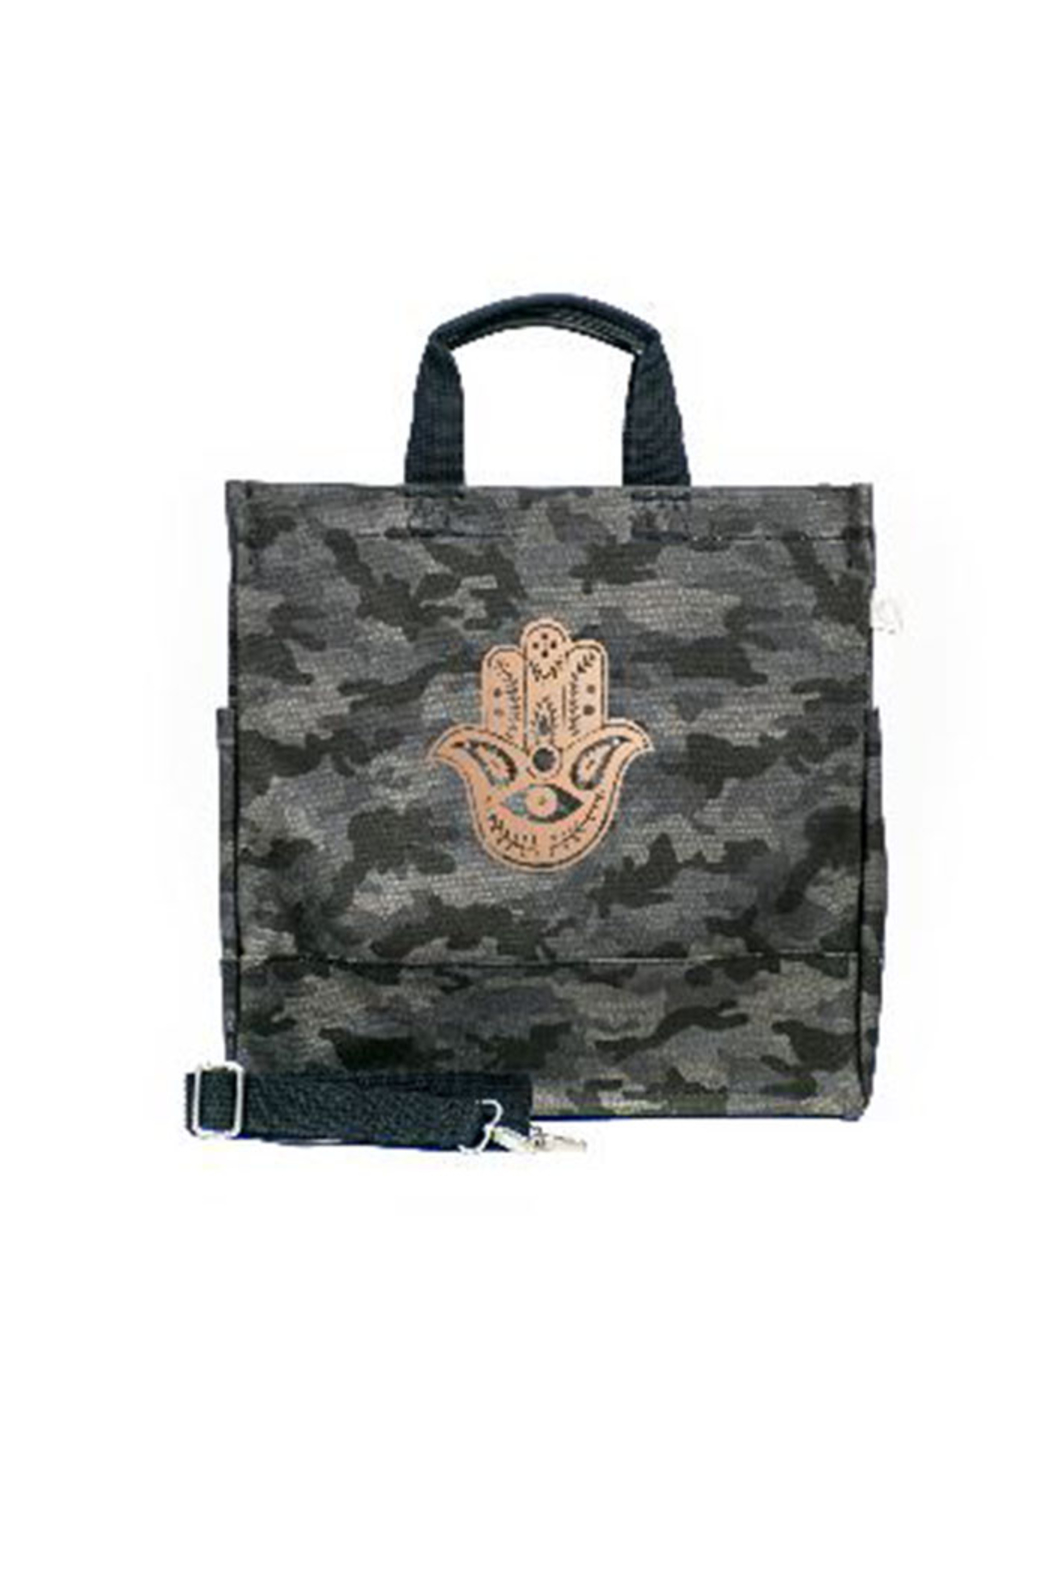 dff1f93e7146 Quilted Koala Luxe North-South Camo Tote from New York by Let s Bag ...